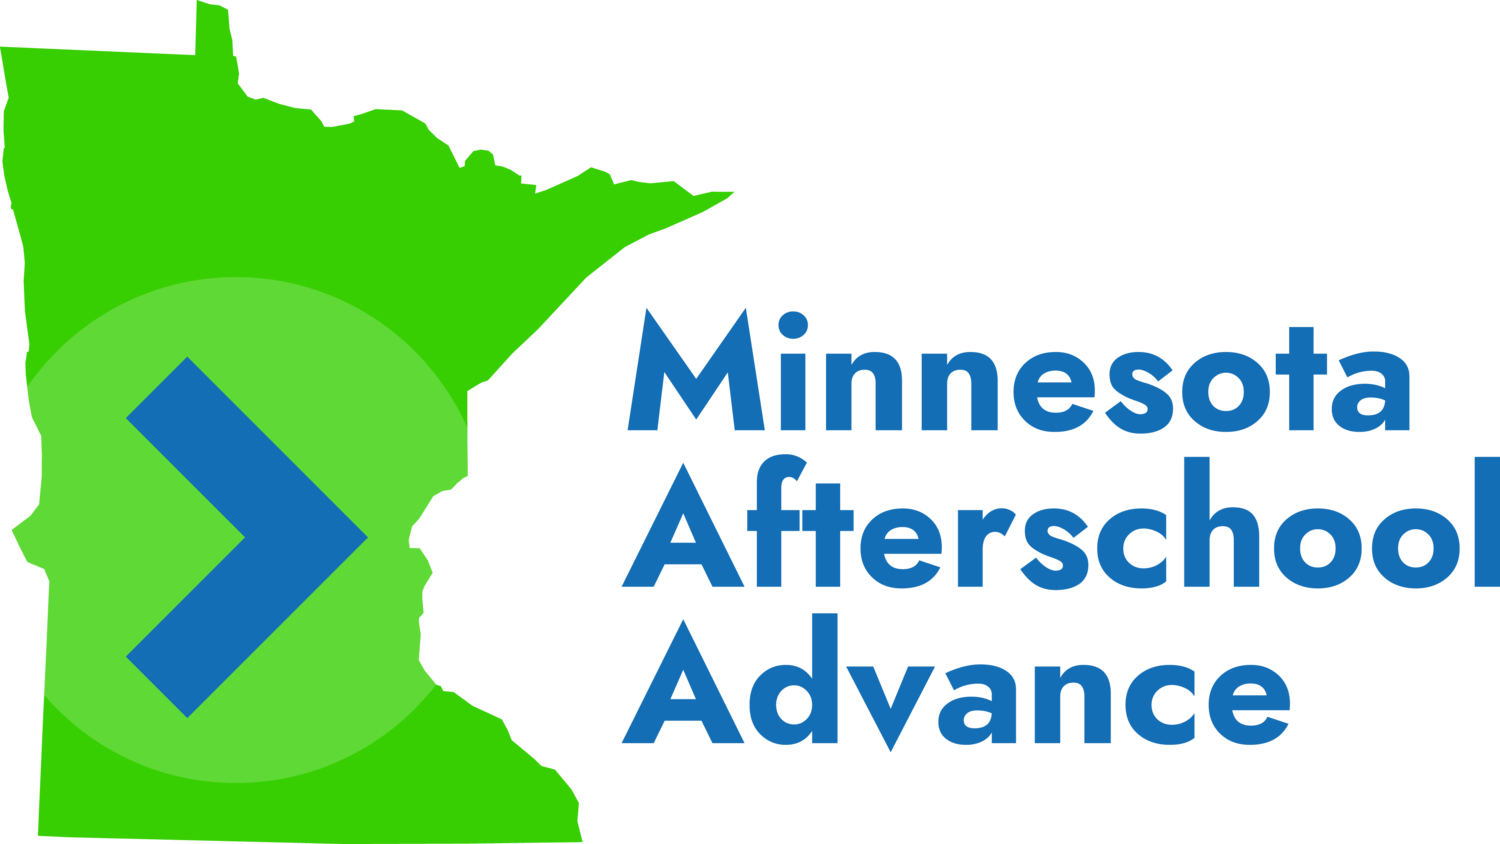 Minnesota Afterschool Advance